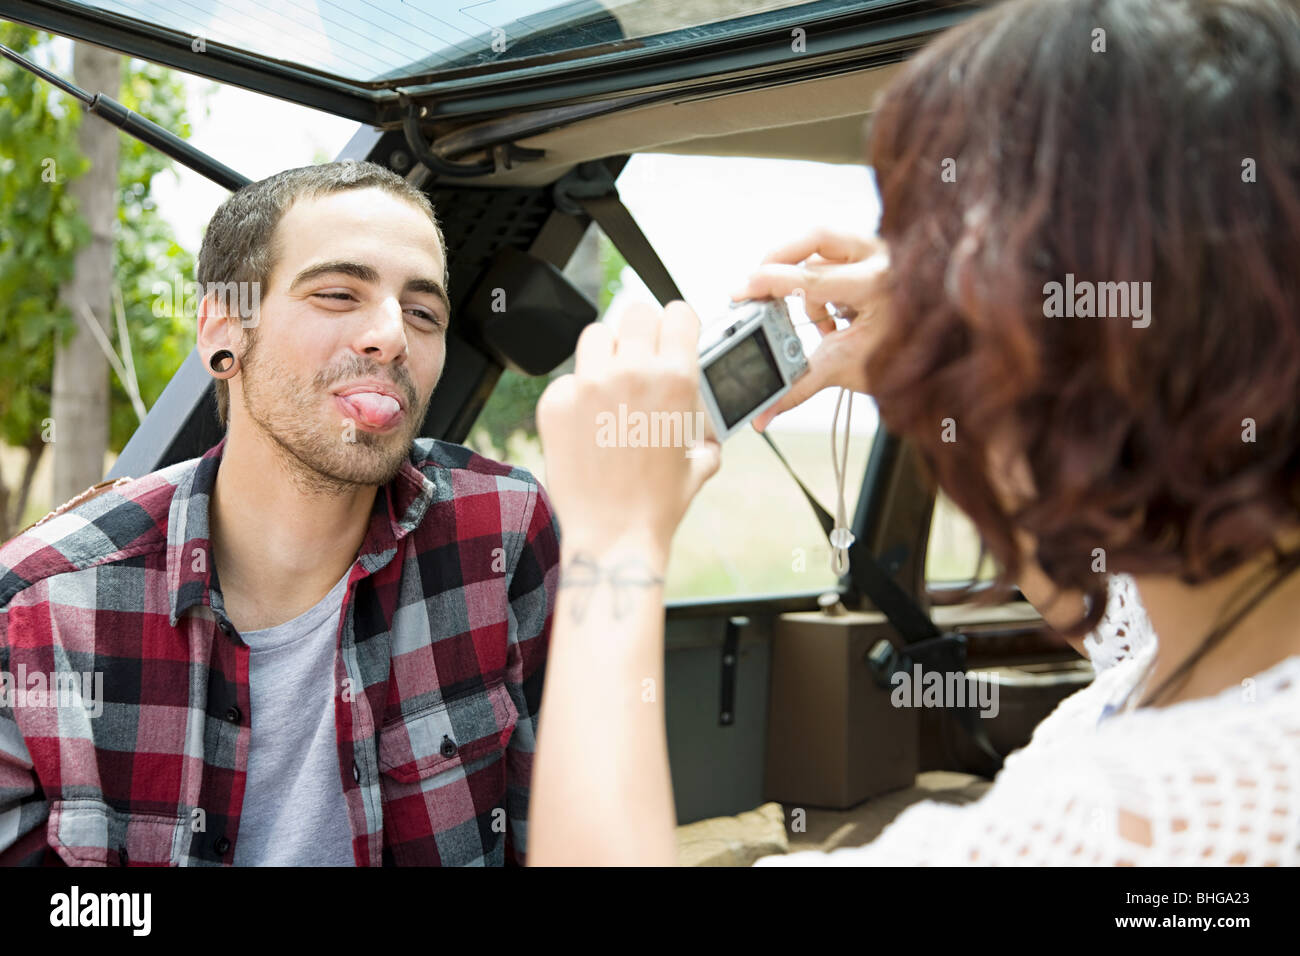 Woman taking picture of man sticking out tongue - Stock Image